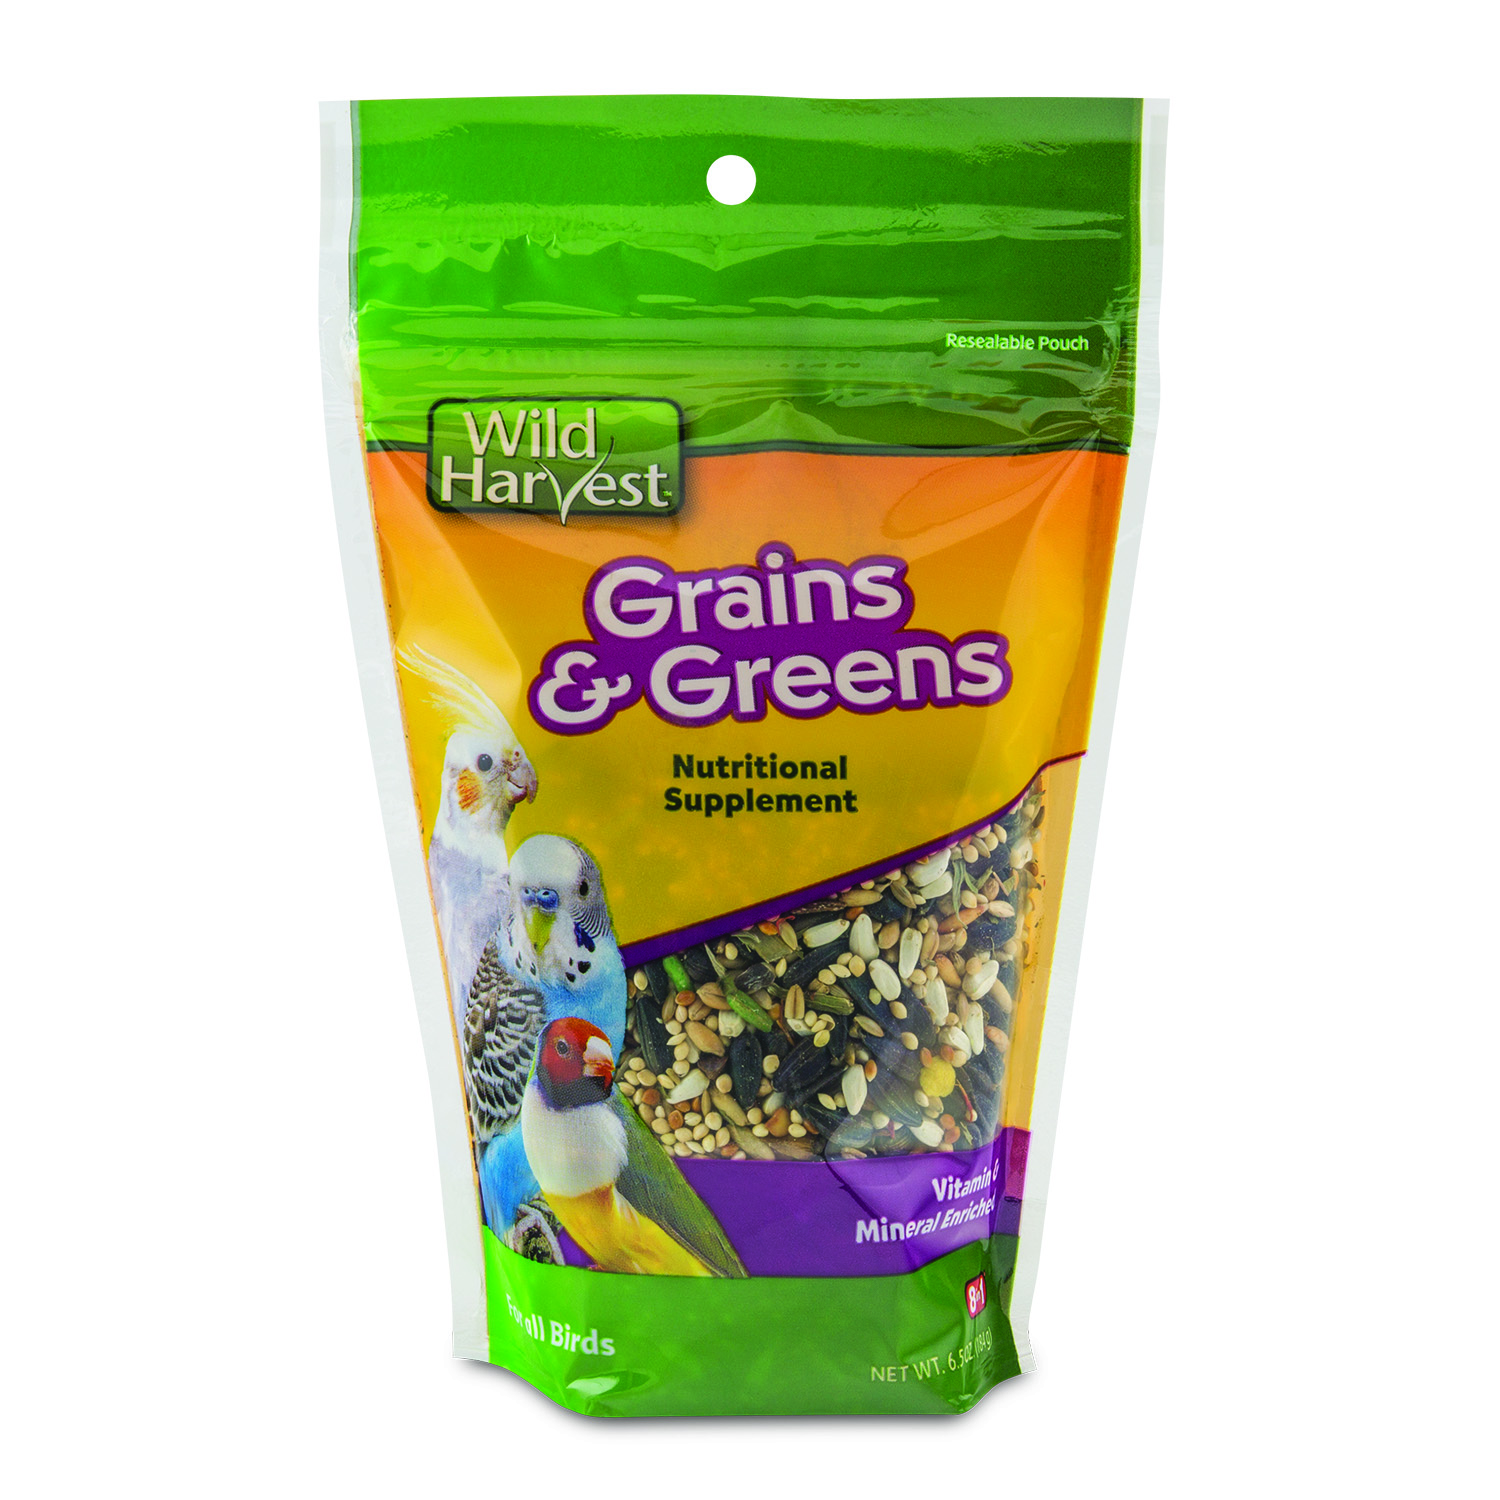 Wild Harvest Grains & Greens Supplement for all Birds